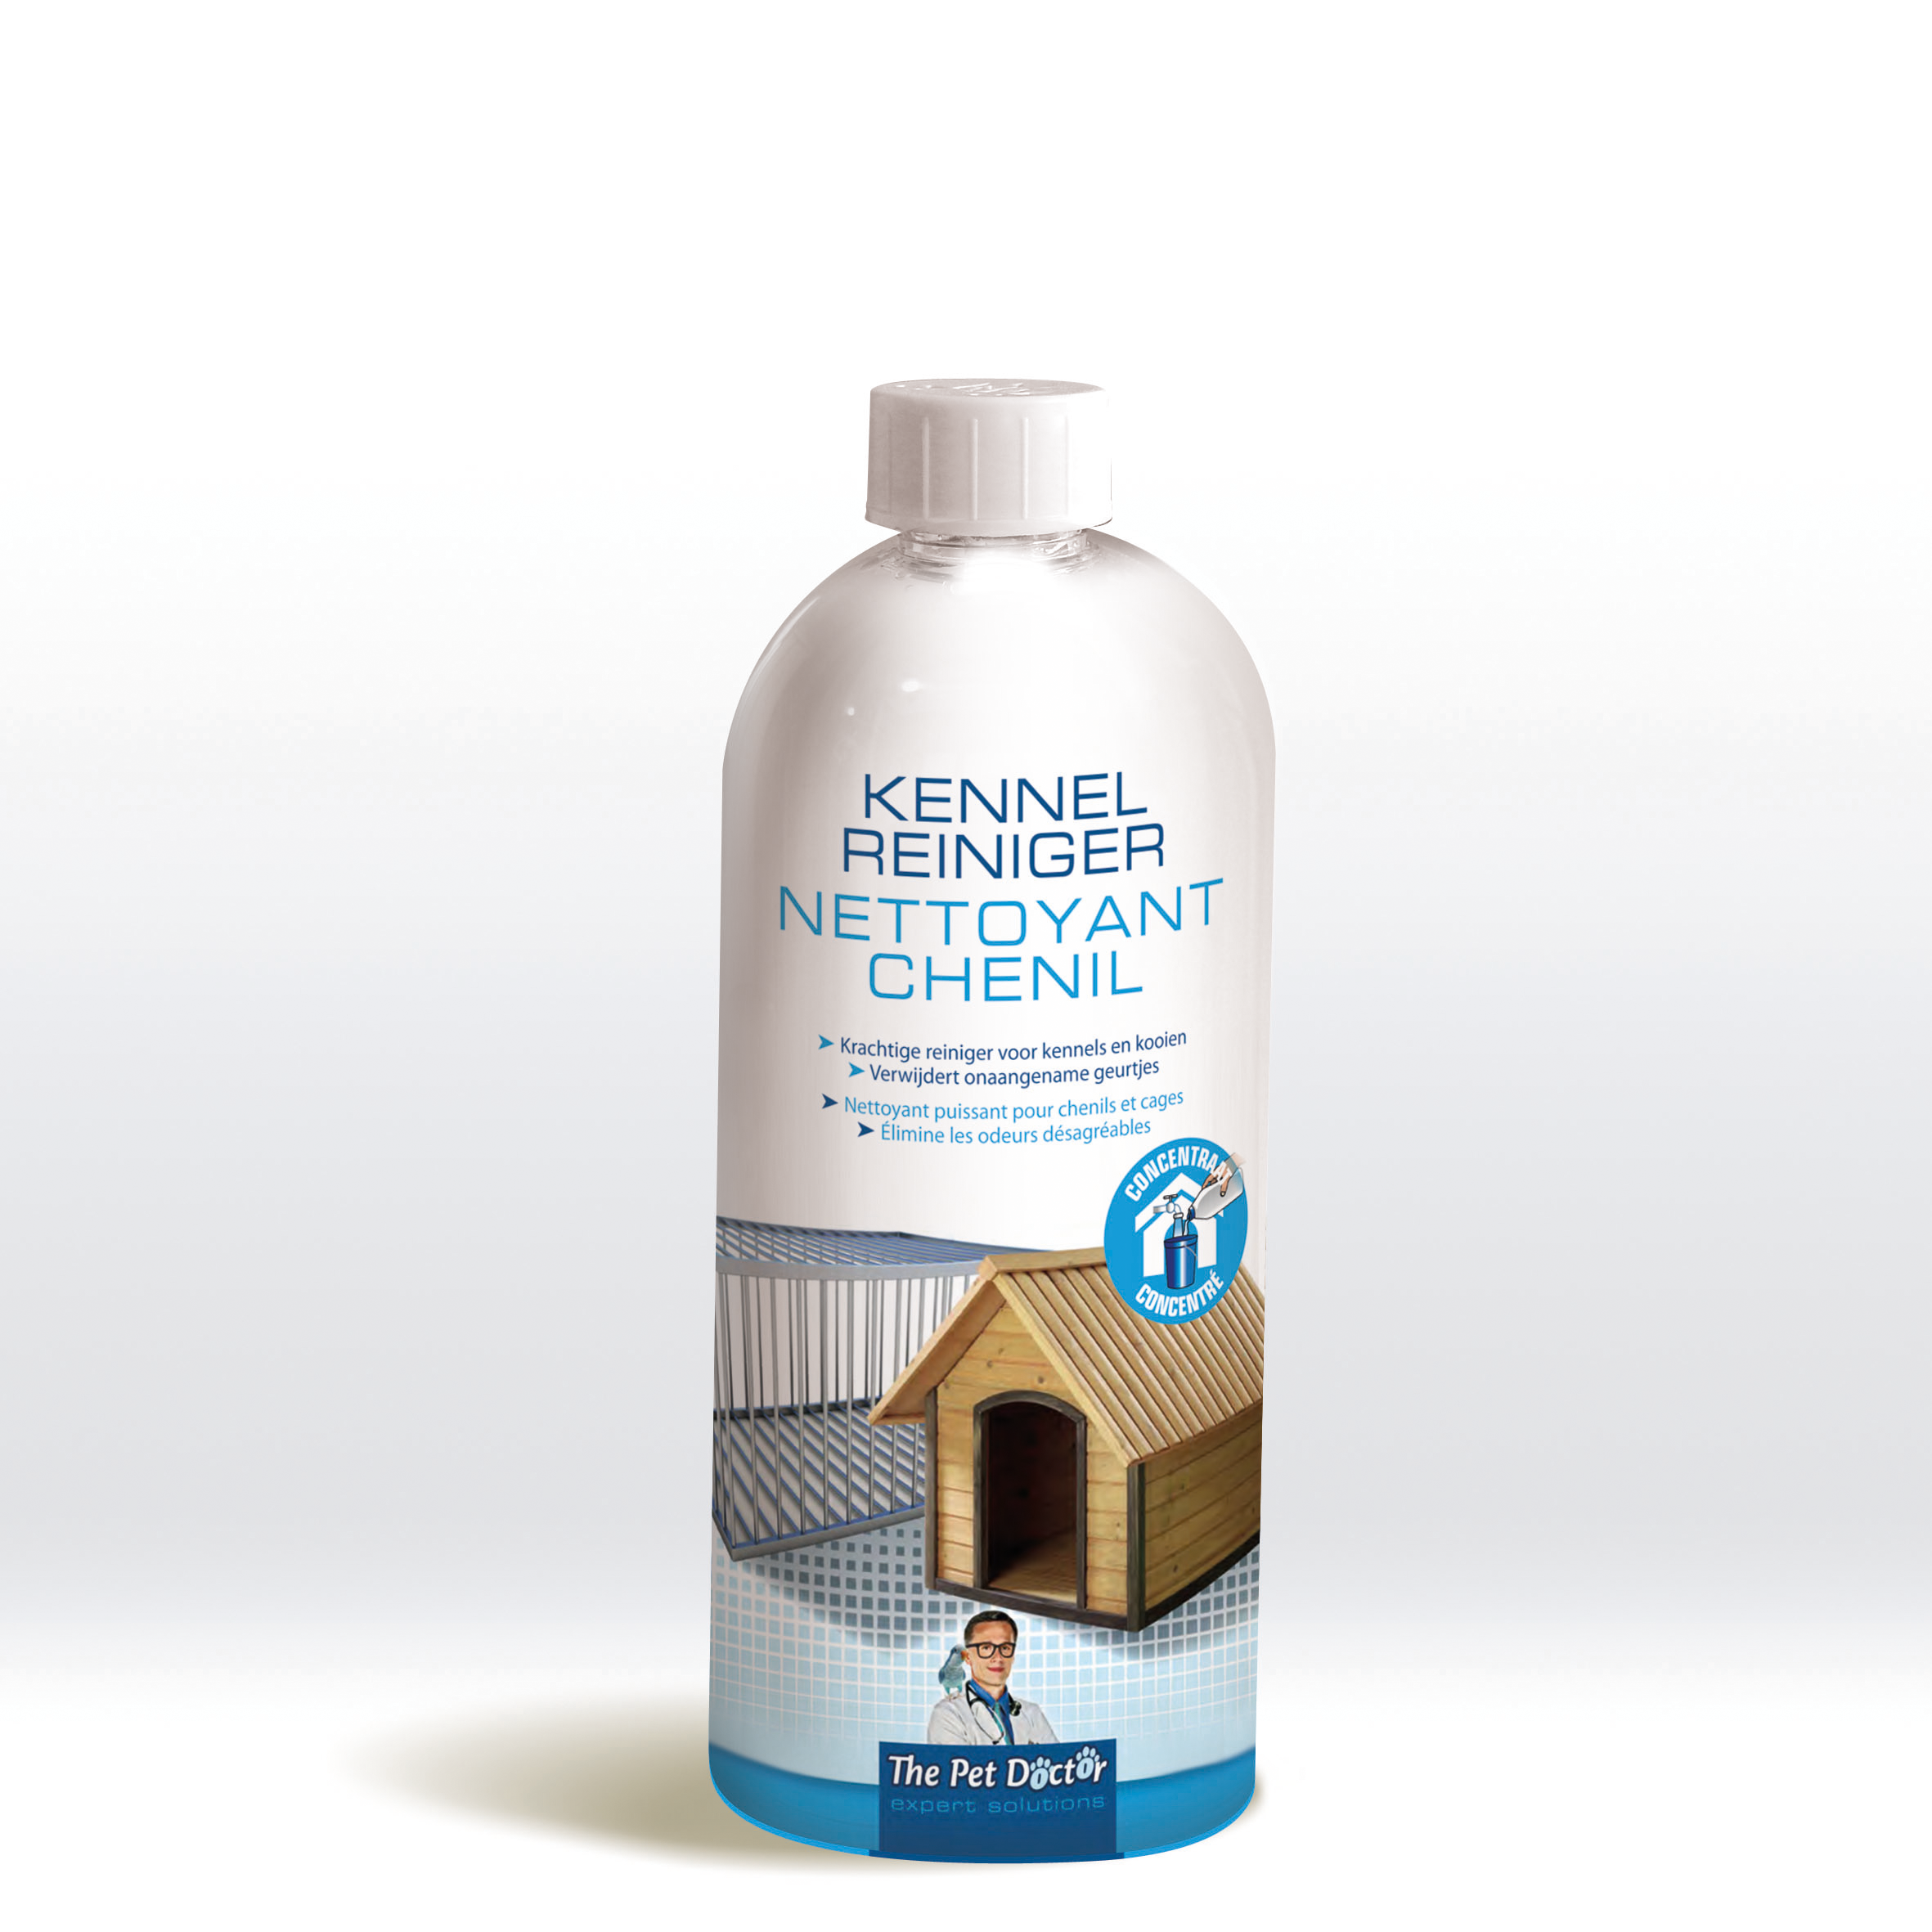 The Pet Doctor Kennelreiniger Concentraat 950 ml image